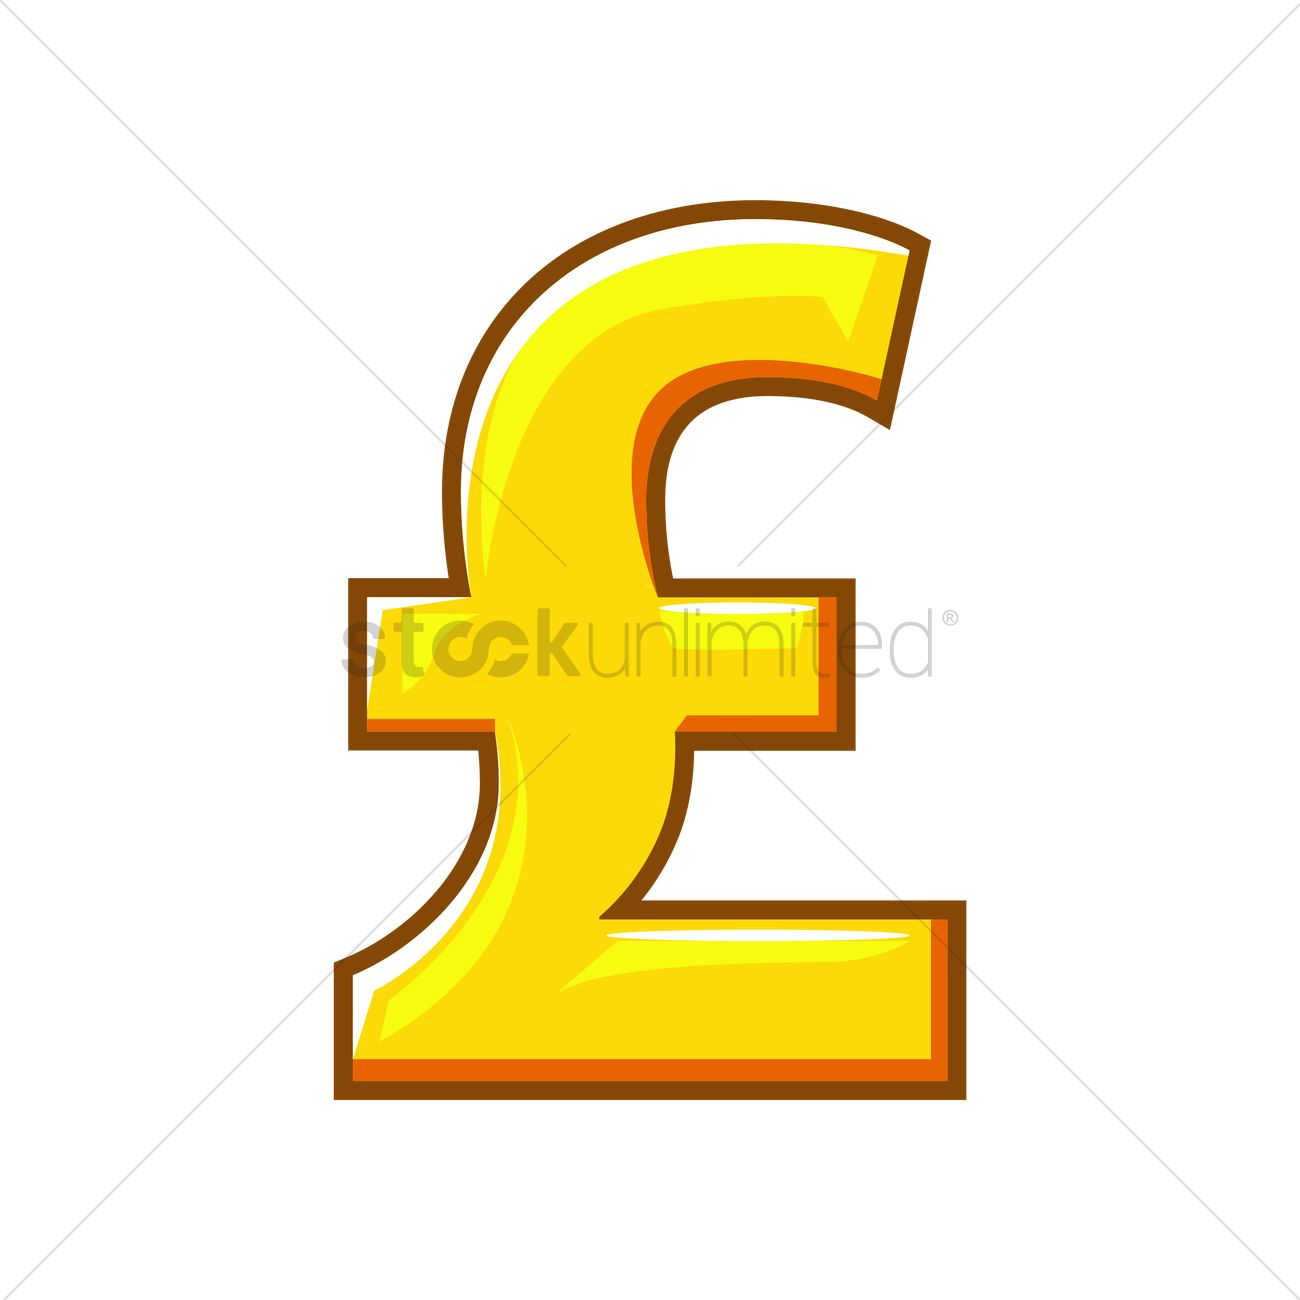 Pound Sterling Currency Symbol Vector Image 1296364 Stockunlimited